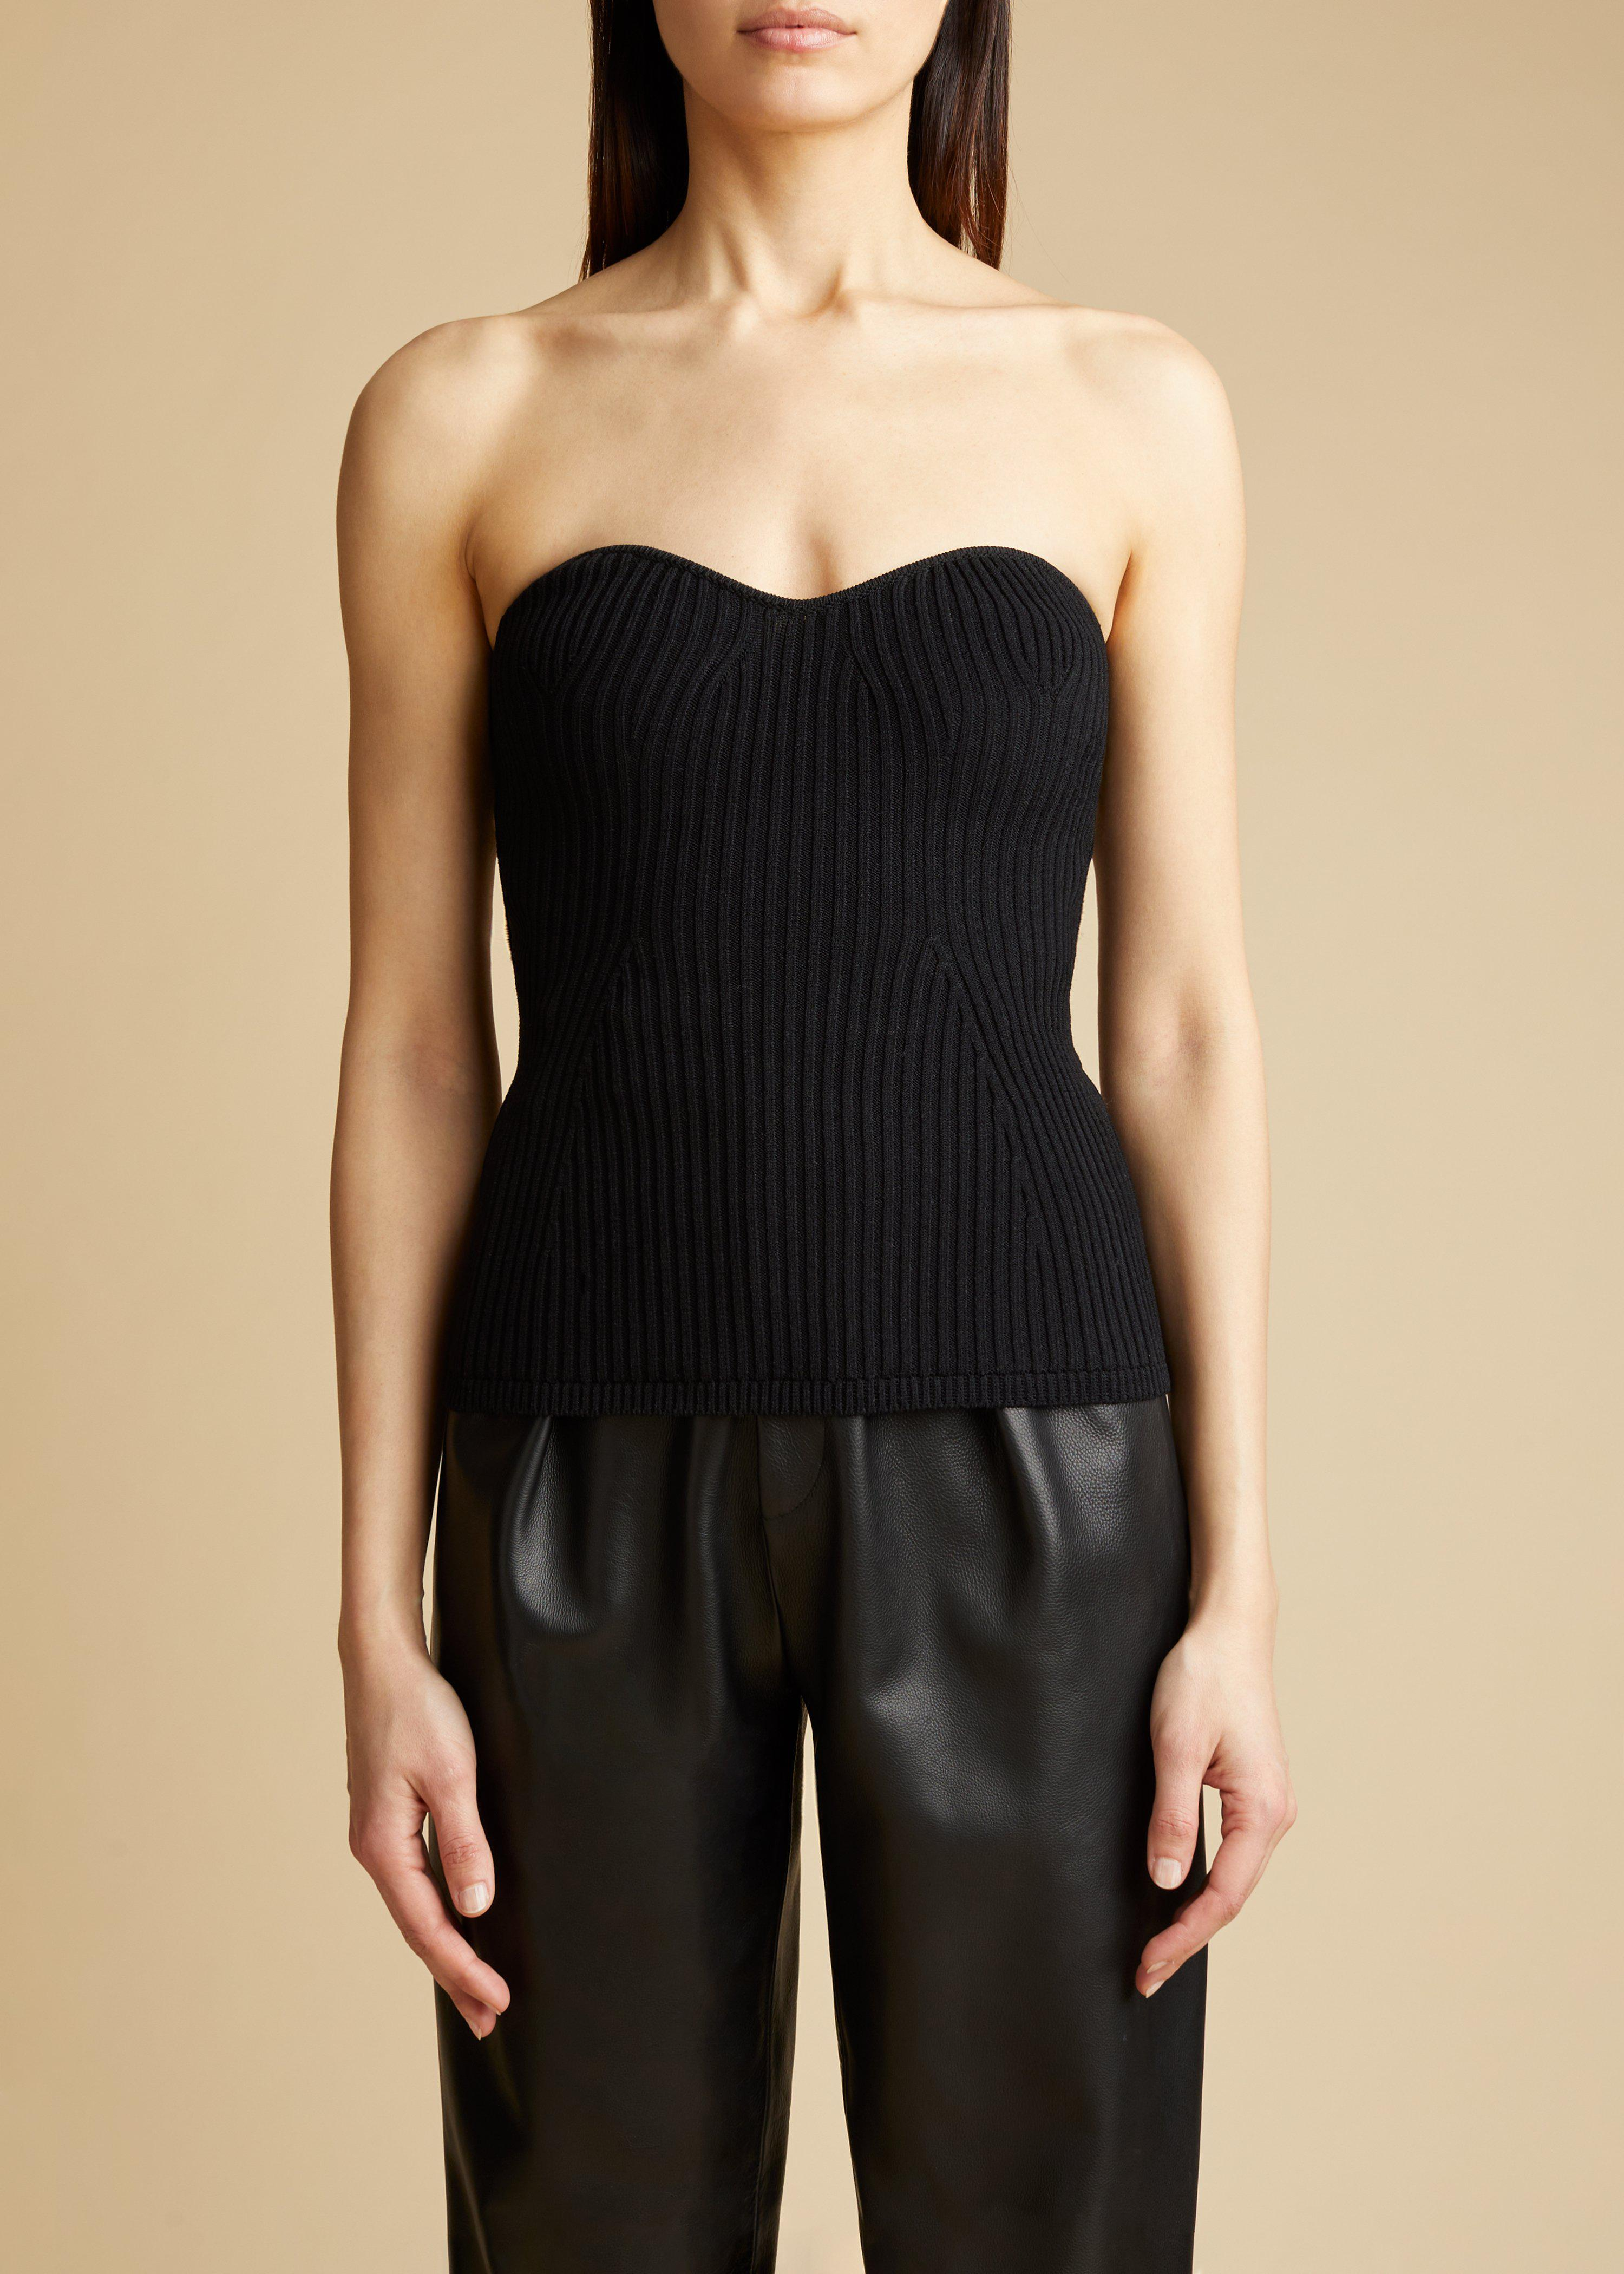 The Lucie Top in Black 0